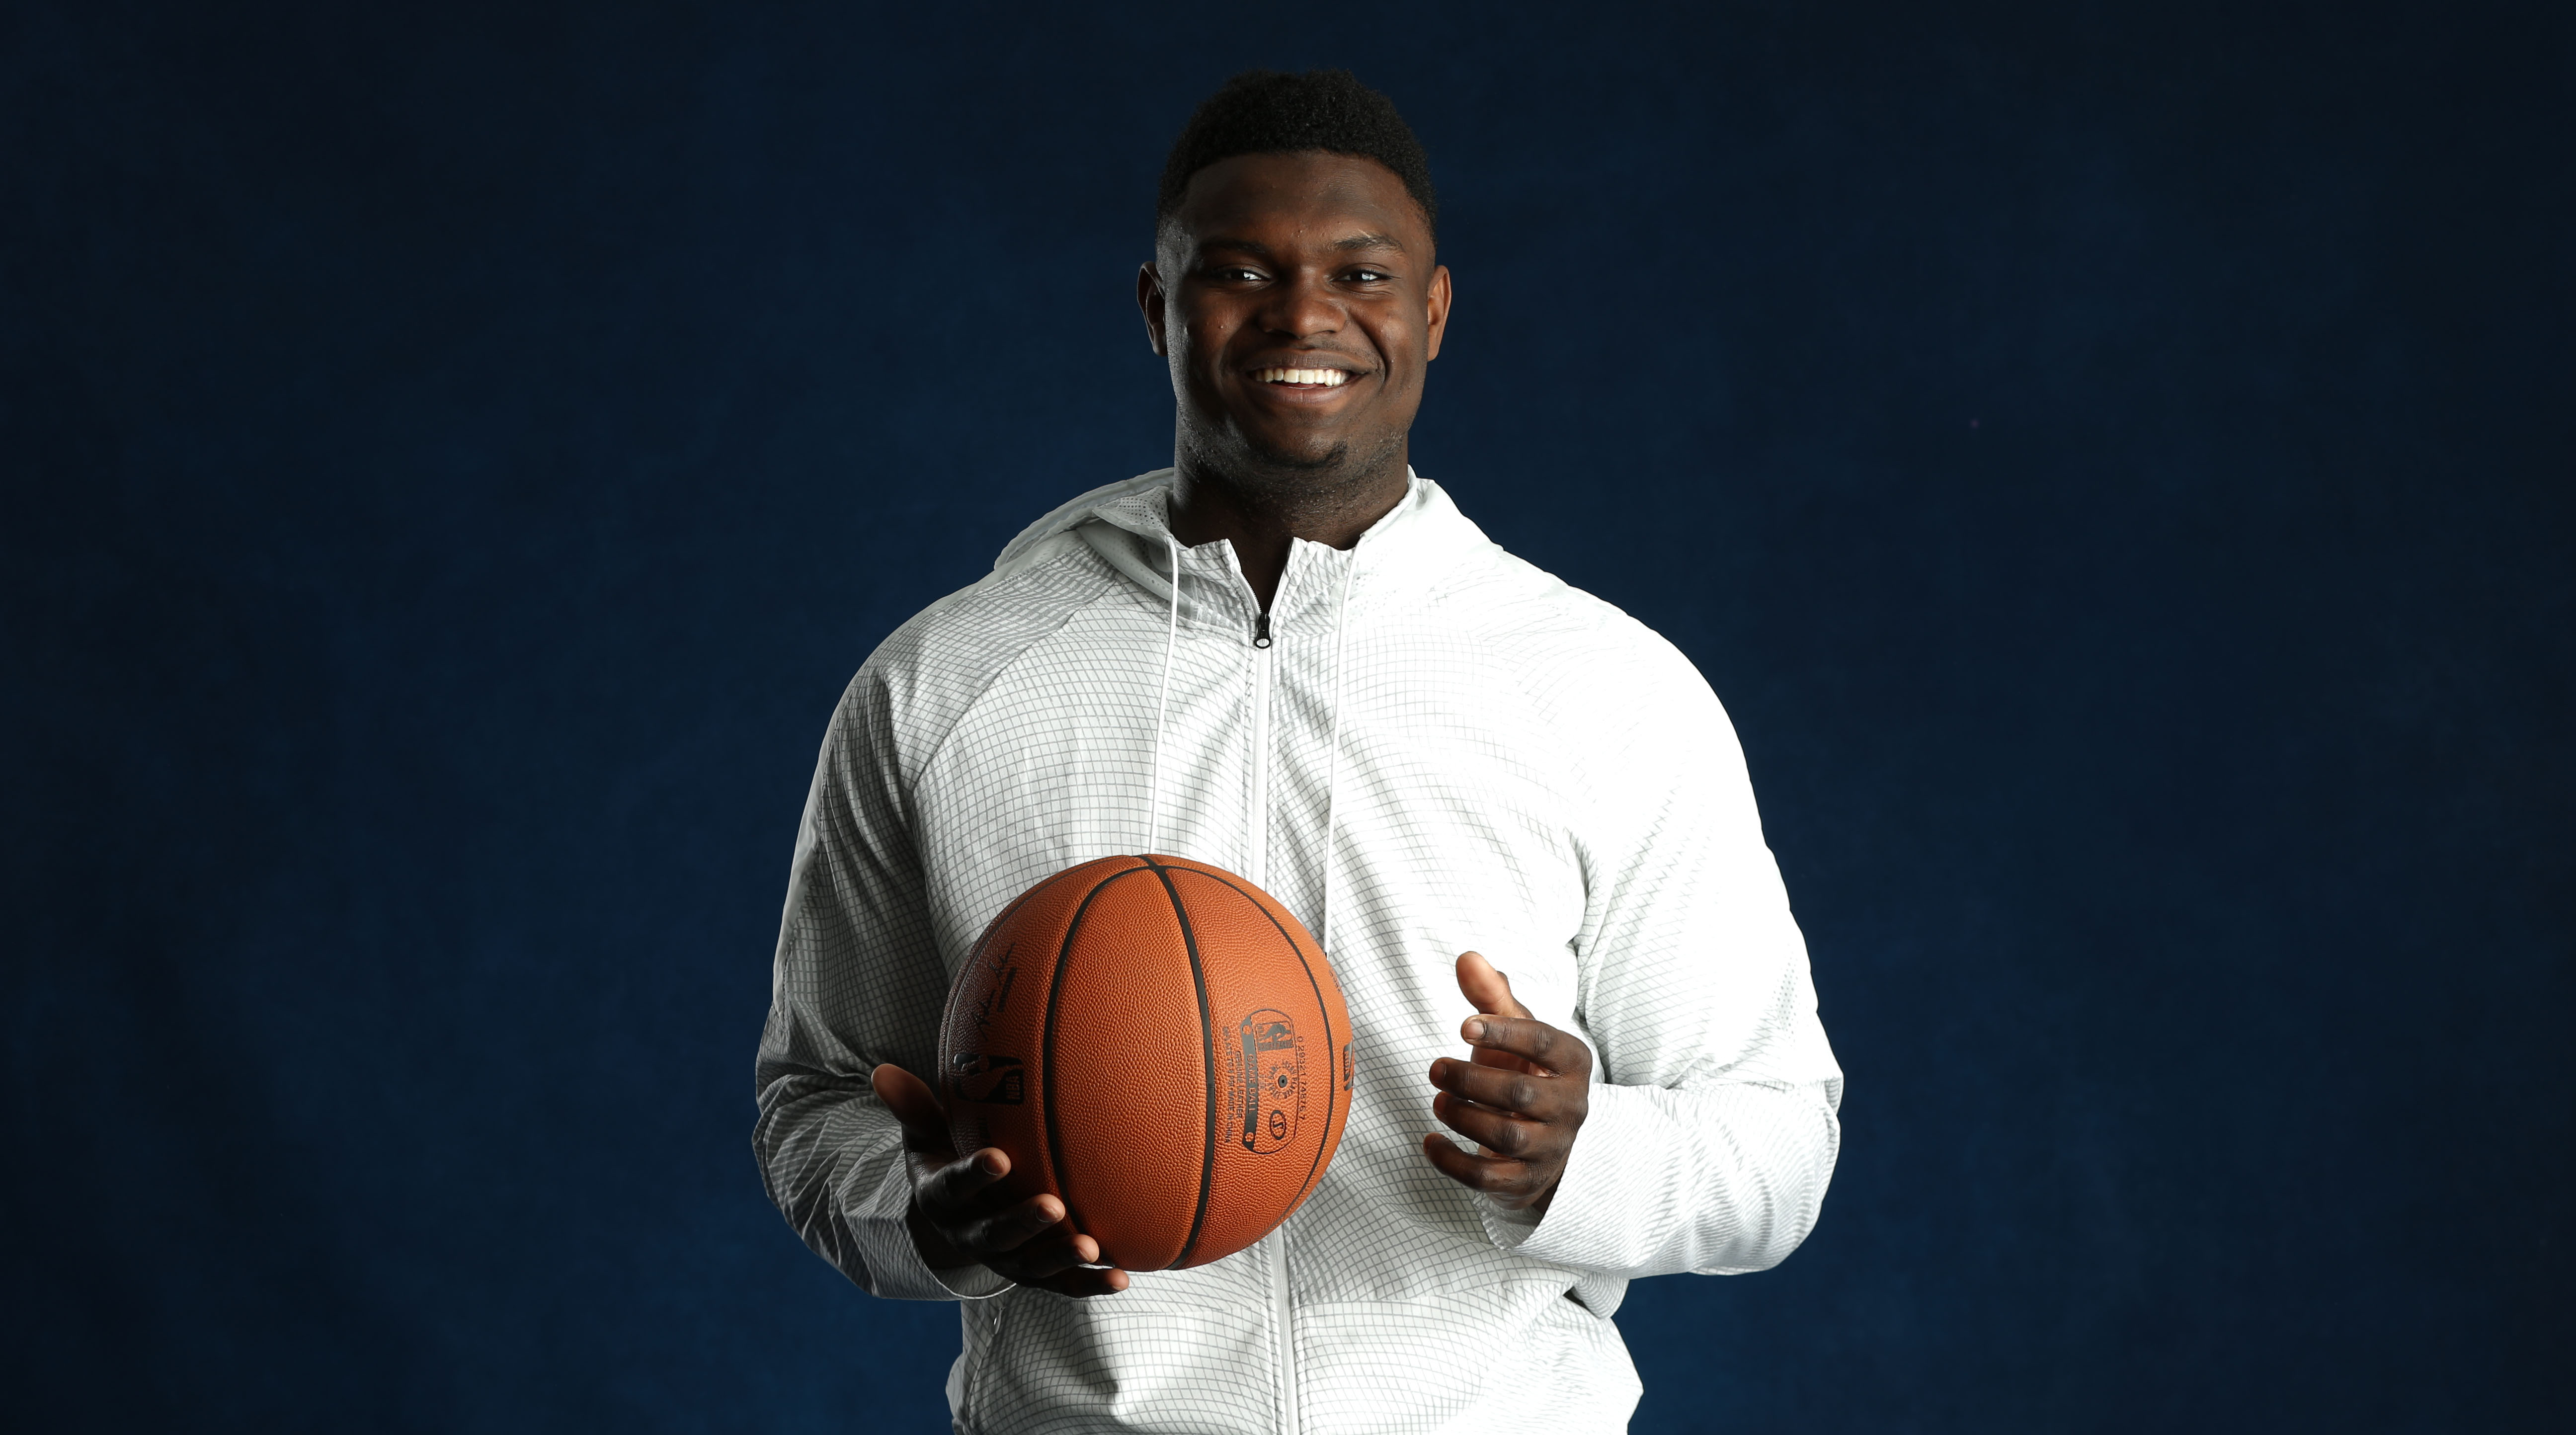 One reader asked the Open Floor podcast if the Pelicans should trade Zion Williamson to the Lakers for LeBron James. Andrew Sharp and The Washington Post's Ben Golliver consider the question and talk about the Zion-AD dynamics in New Orleans.